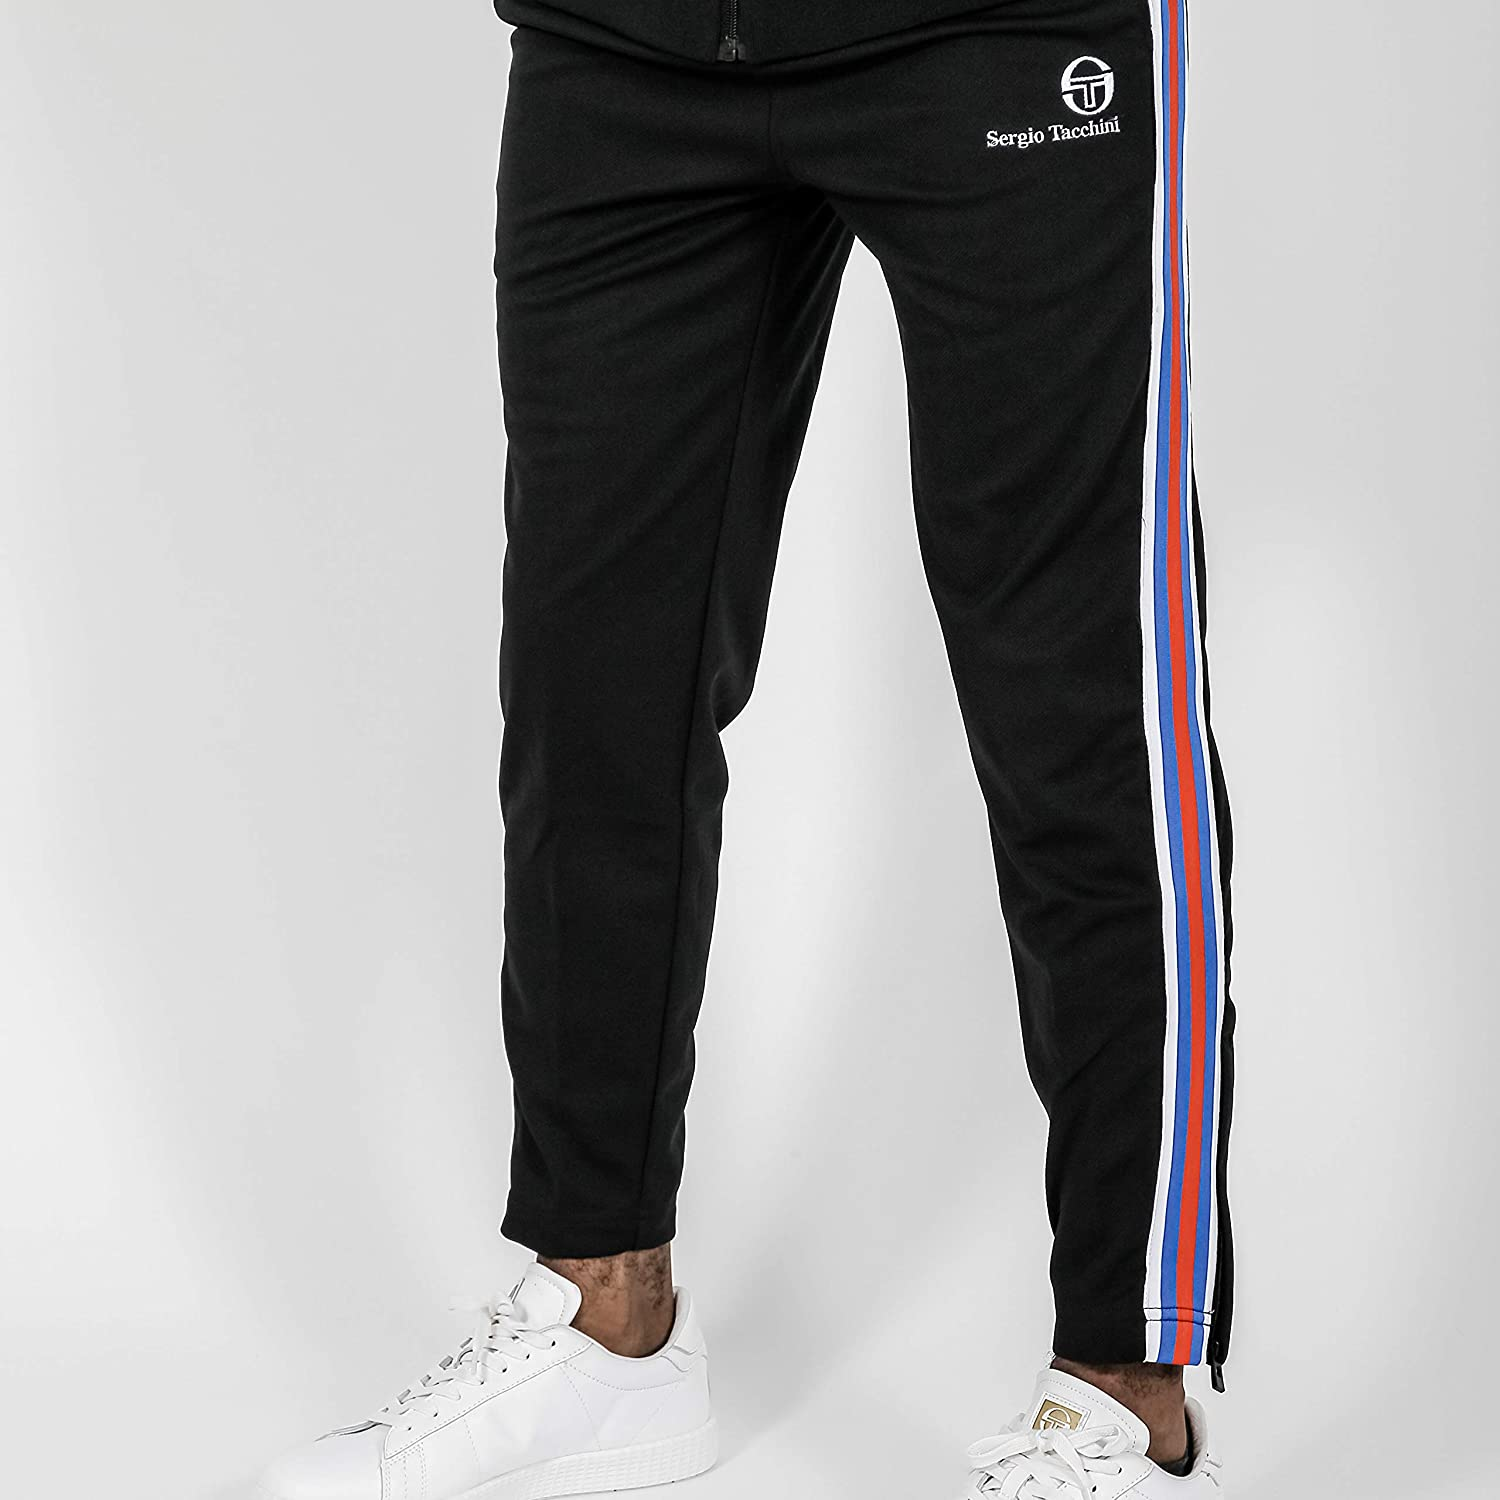 Sergio Tacchini Mens Darcy Casual Tracksuit Lounge Track Top Pants Bottoms Set